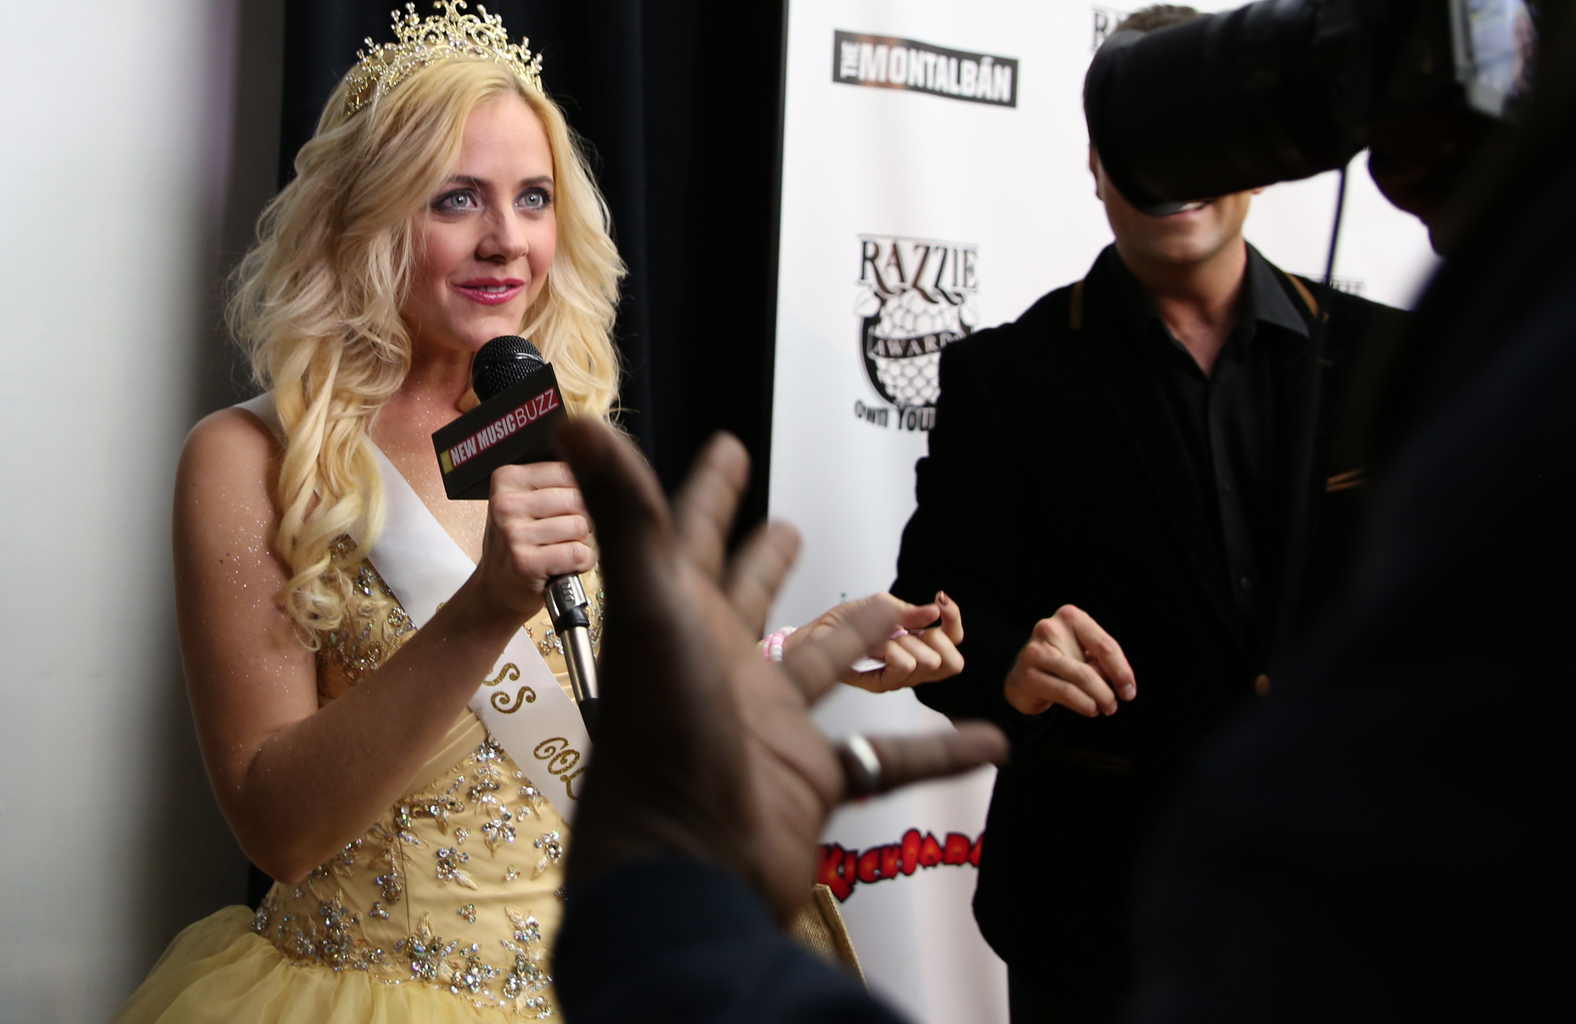 Aimee-Lynn as Tinsel steals the mic AND the spotlight on the red carpet at  The Razzie Awards.